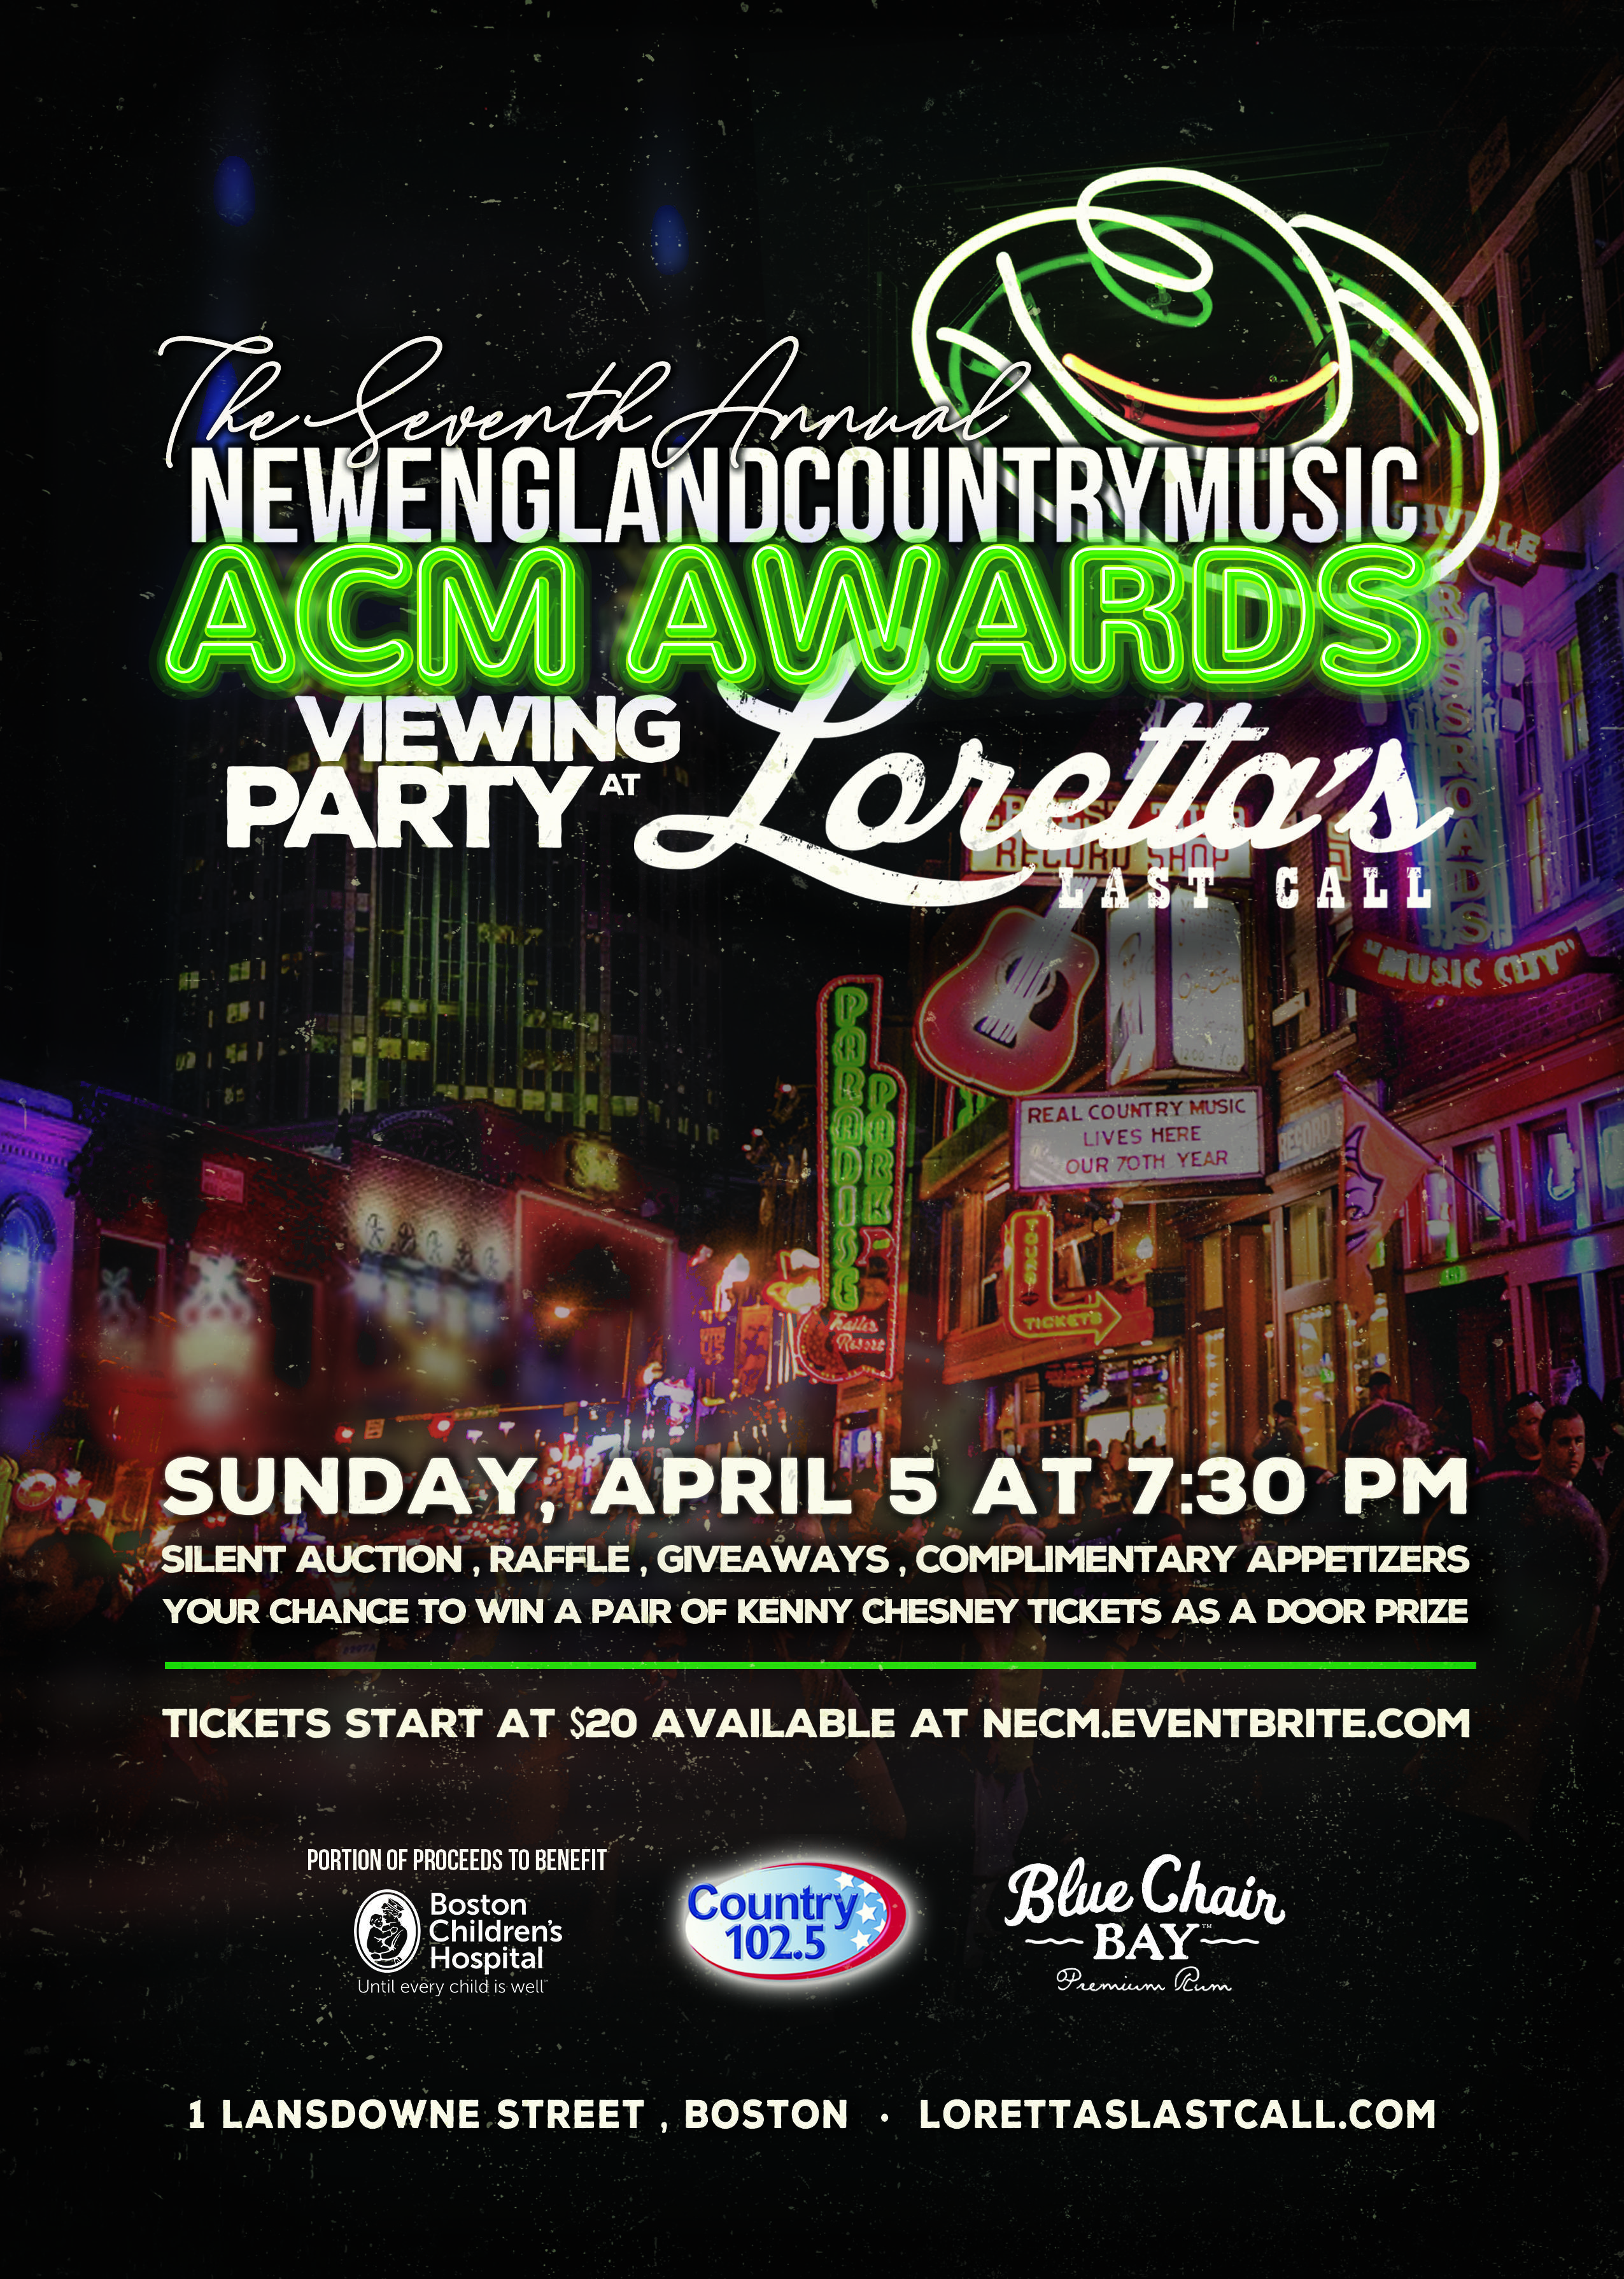 NECM's 7th Annual ACM Awards Viewing Party